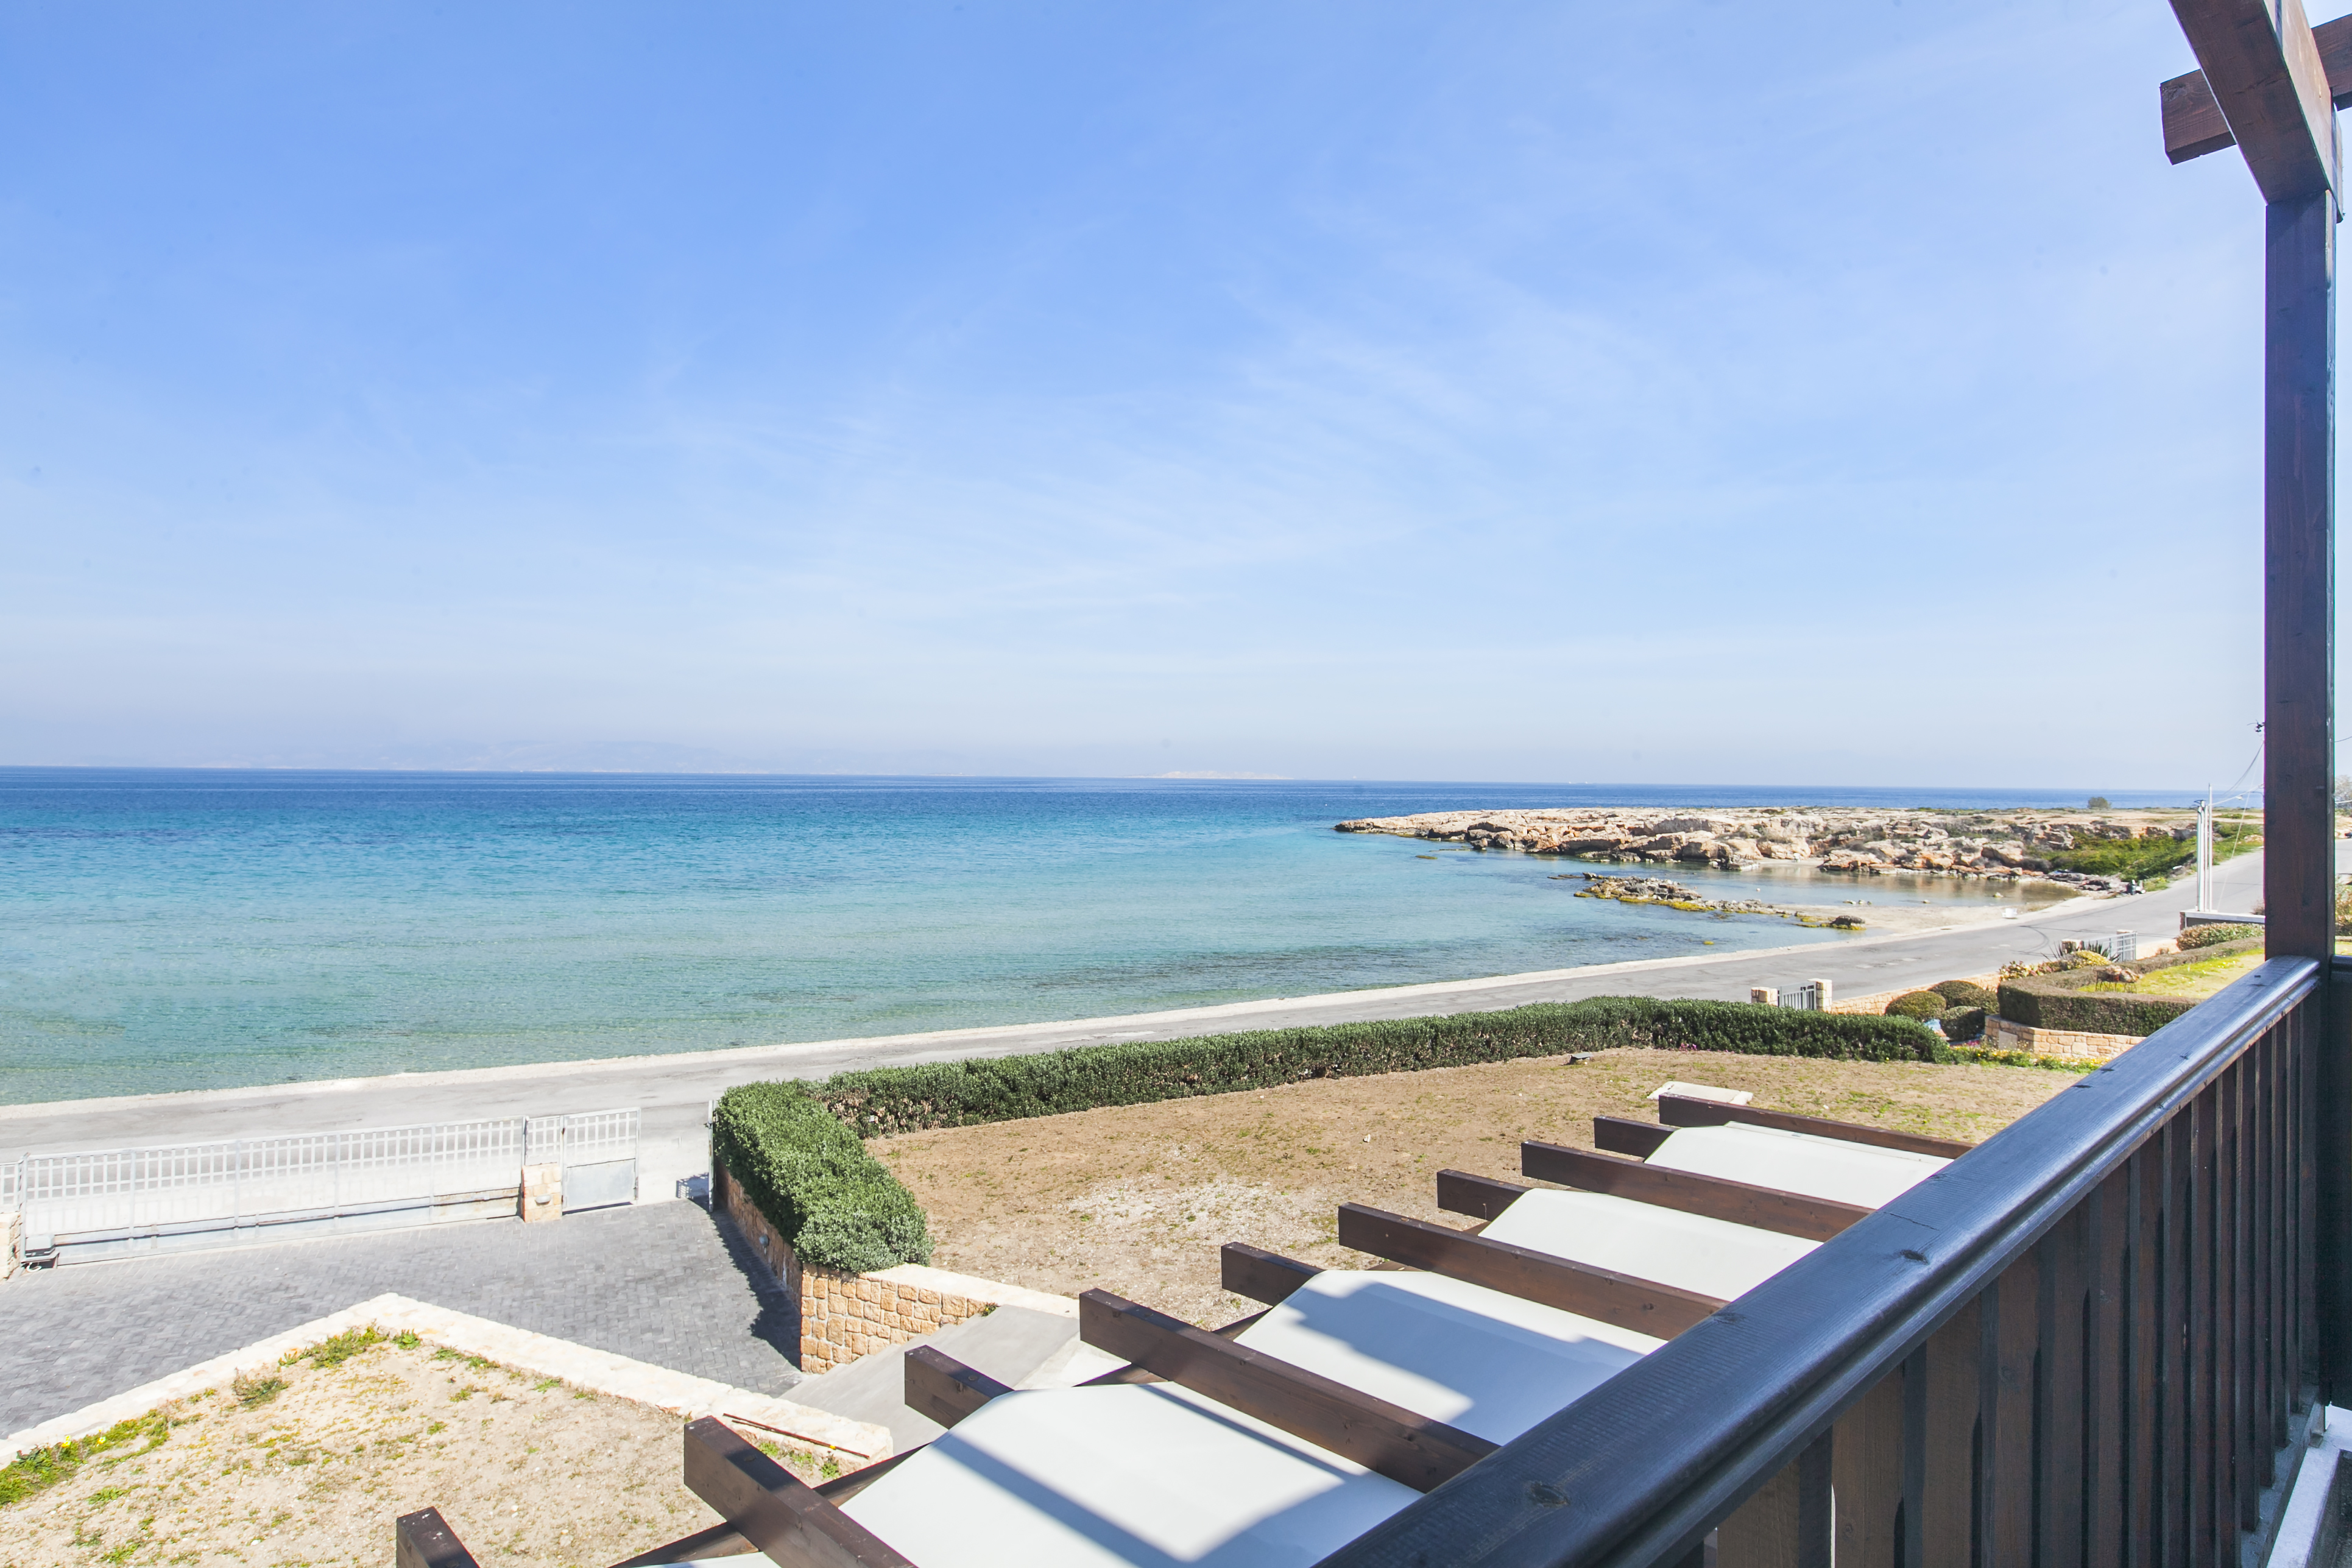 Villa in the island of Aegina on the beach for rent